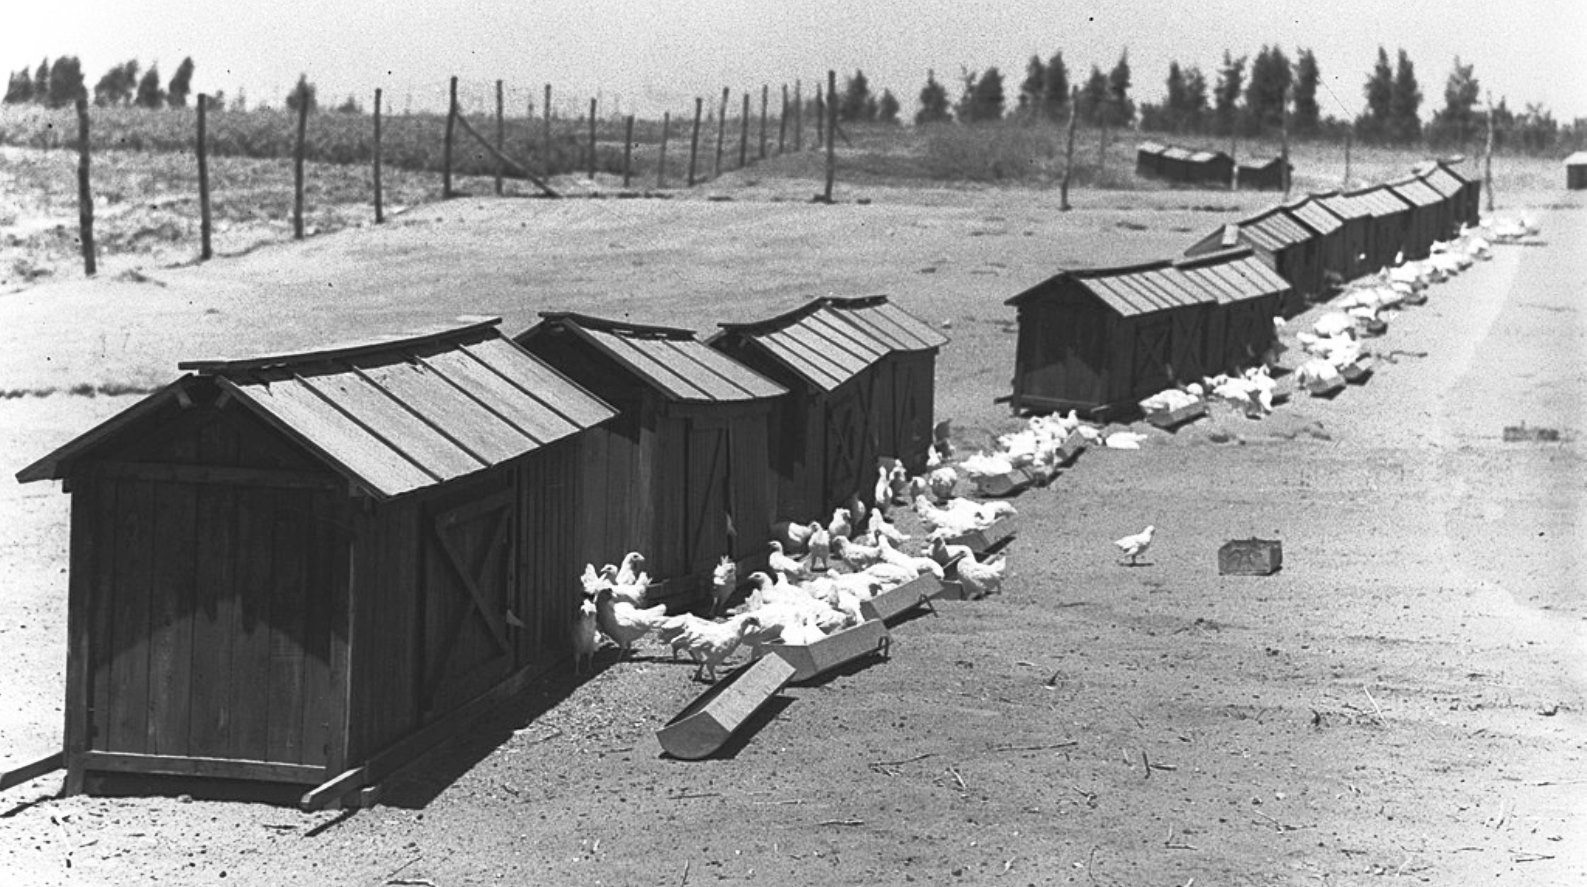 A chicken farm at Kfar Warburg, 1938. Photo by Zoltan Kluger for GPO/from the National Photo Collection of Israel